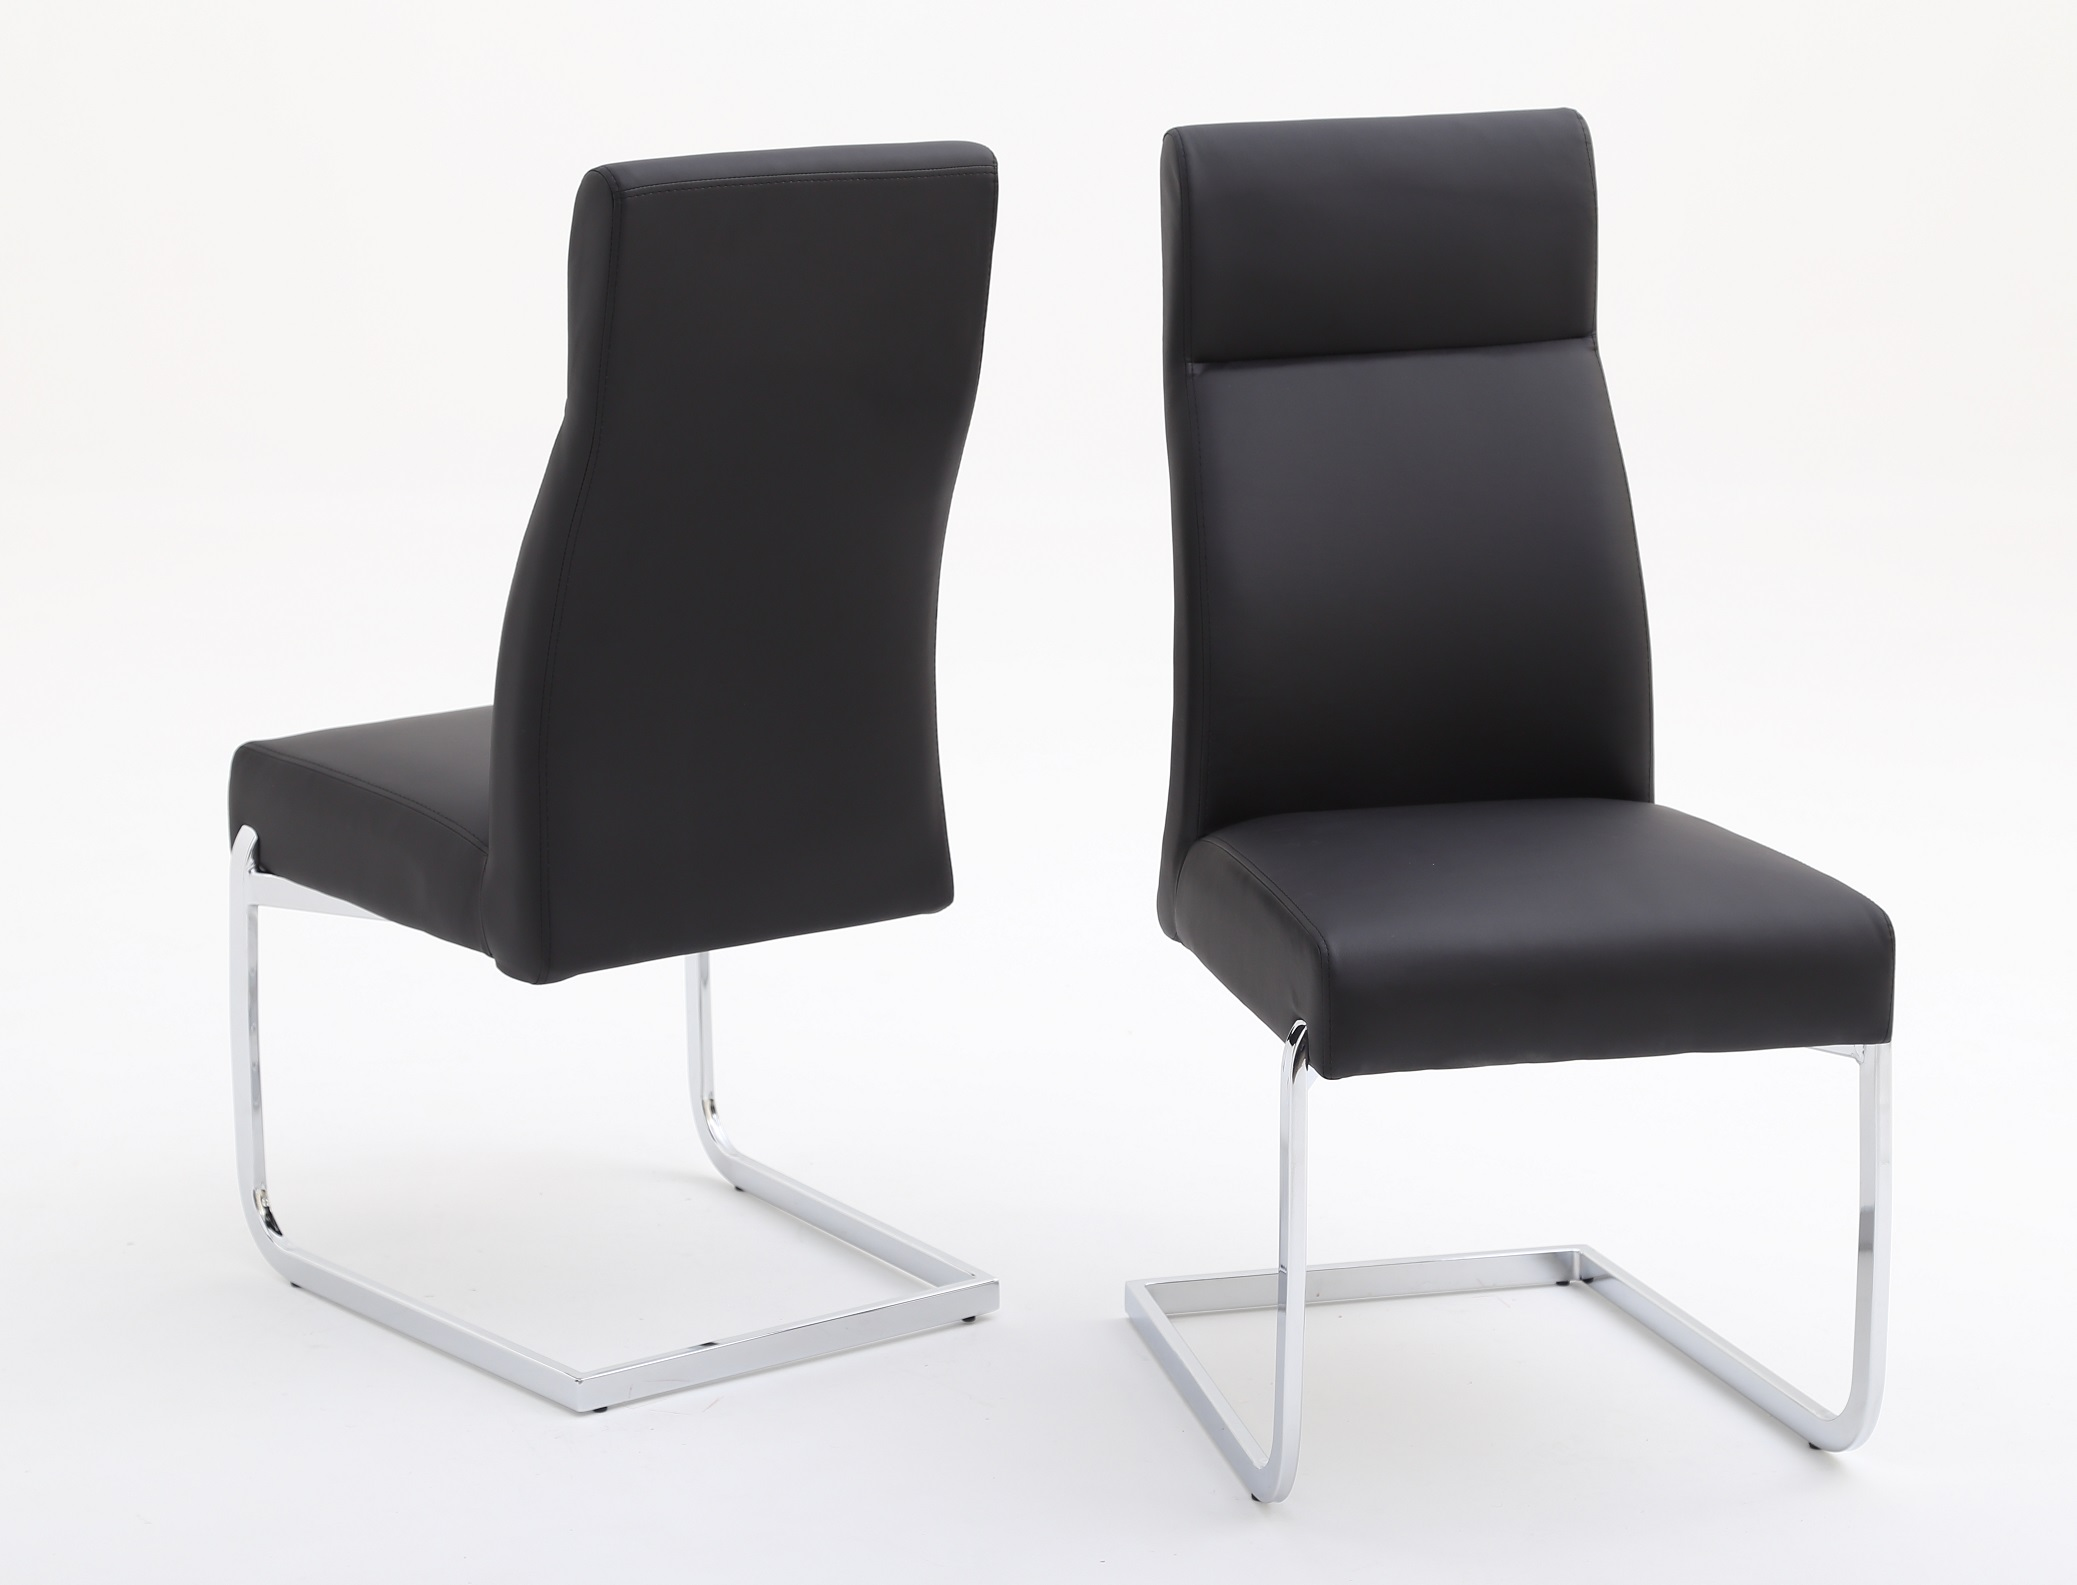 https://www.firstfurniture.co.uk/pub/media/catalog/product/d/a/dante_chair_black_1.jpg